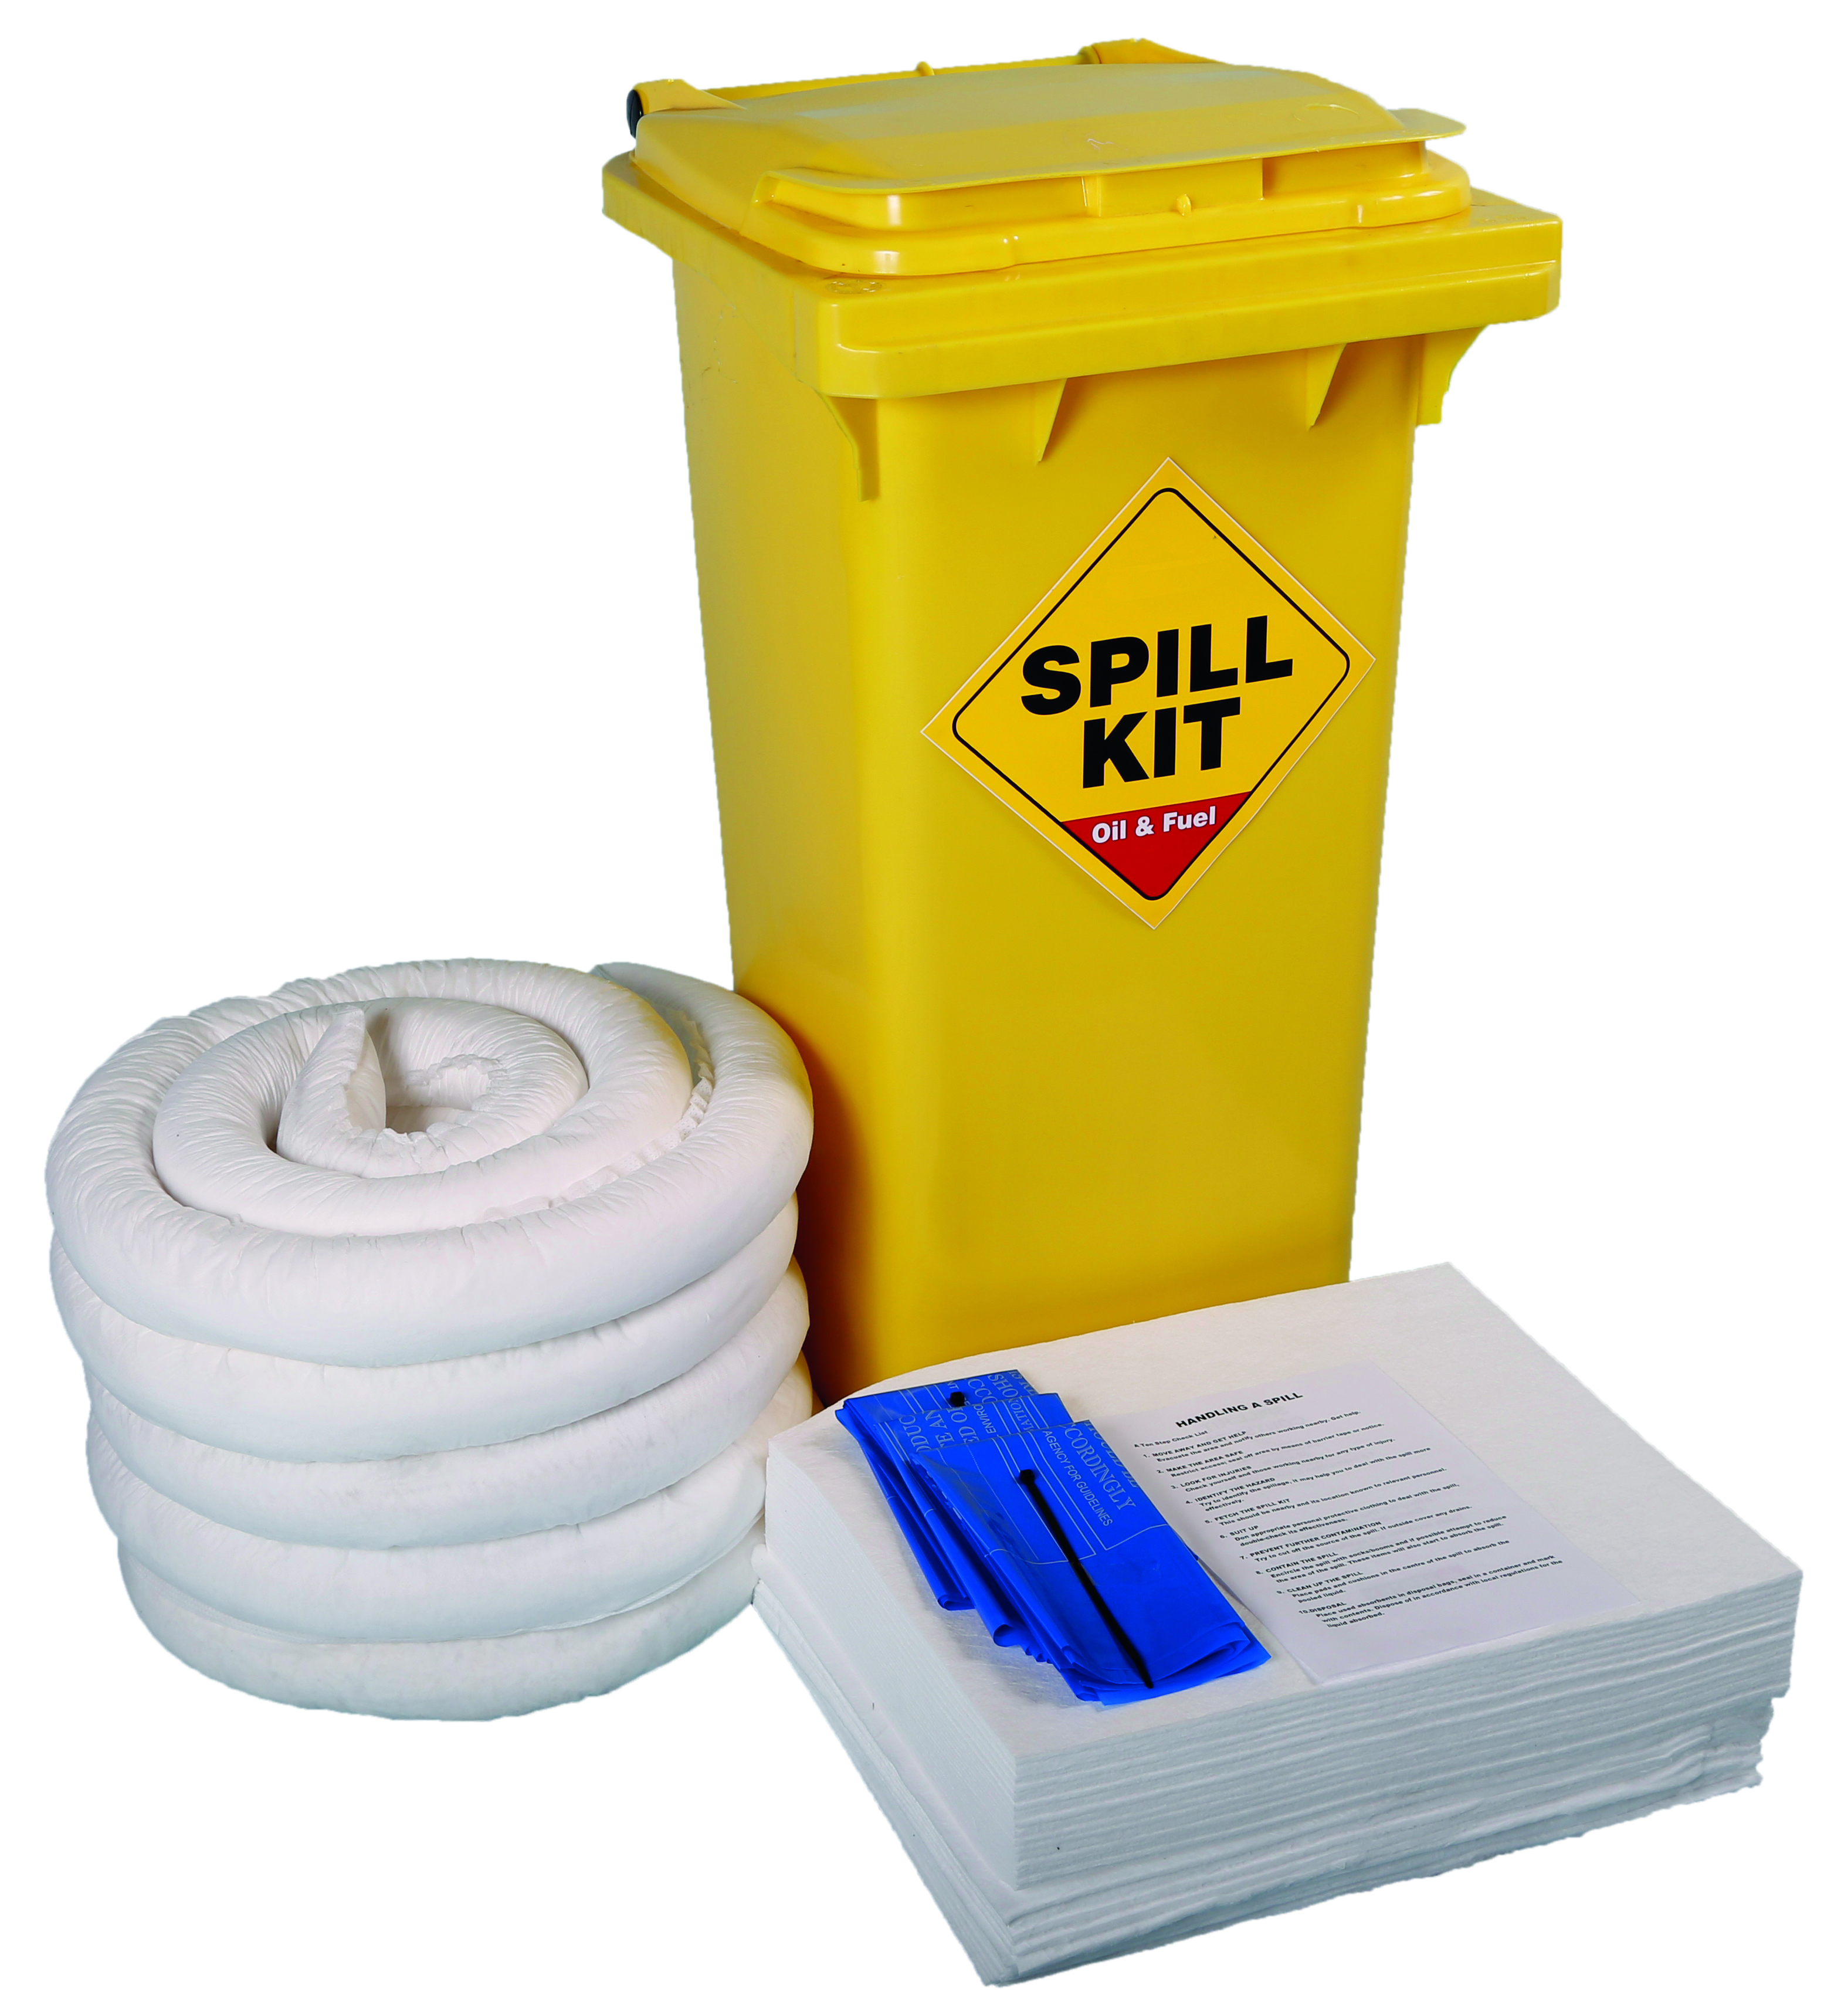 120 Litre Oil and Fuel Only Spill Kit in Wheeled Bin